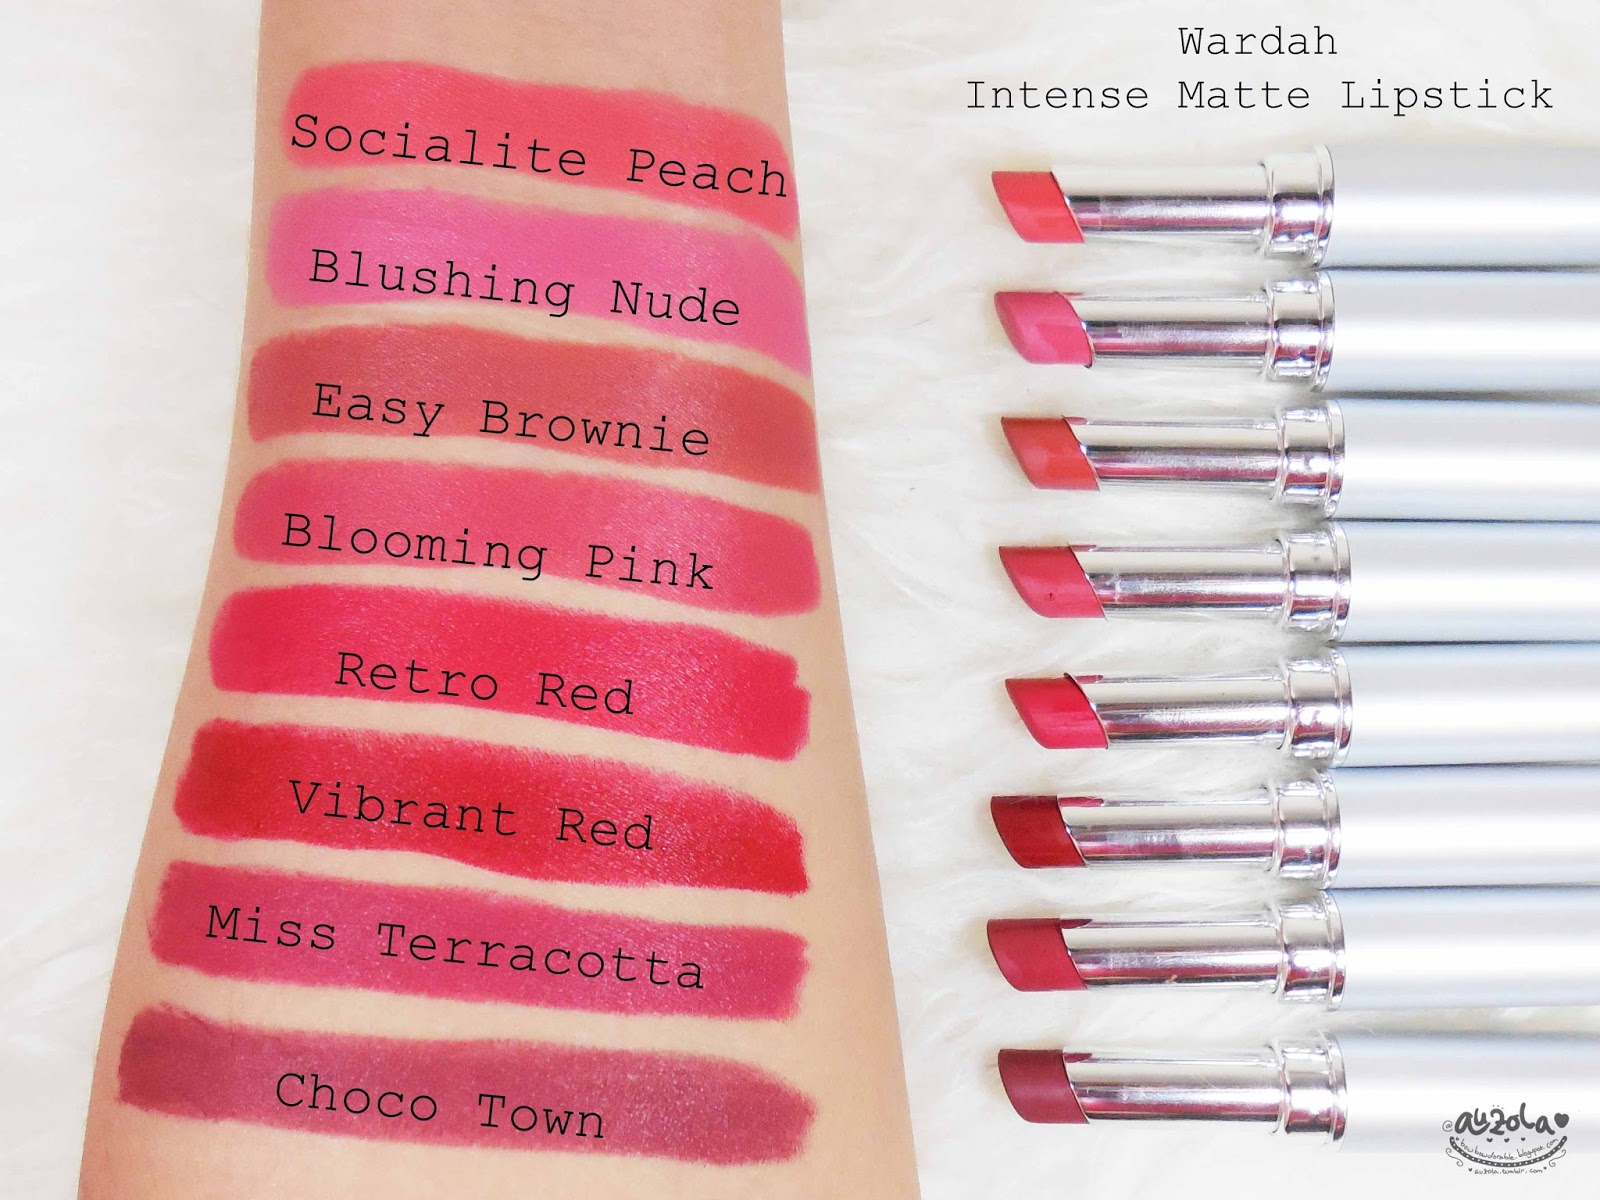 Rainbowdorable By Auzola Indonesian Beauty Blogger Review Wardah Lip Gloss Here Goes On My Lips